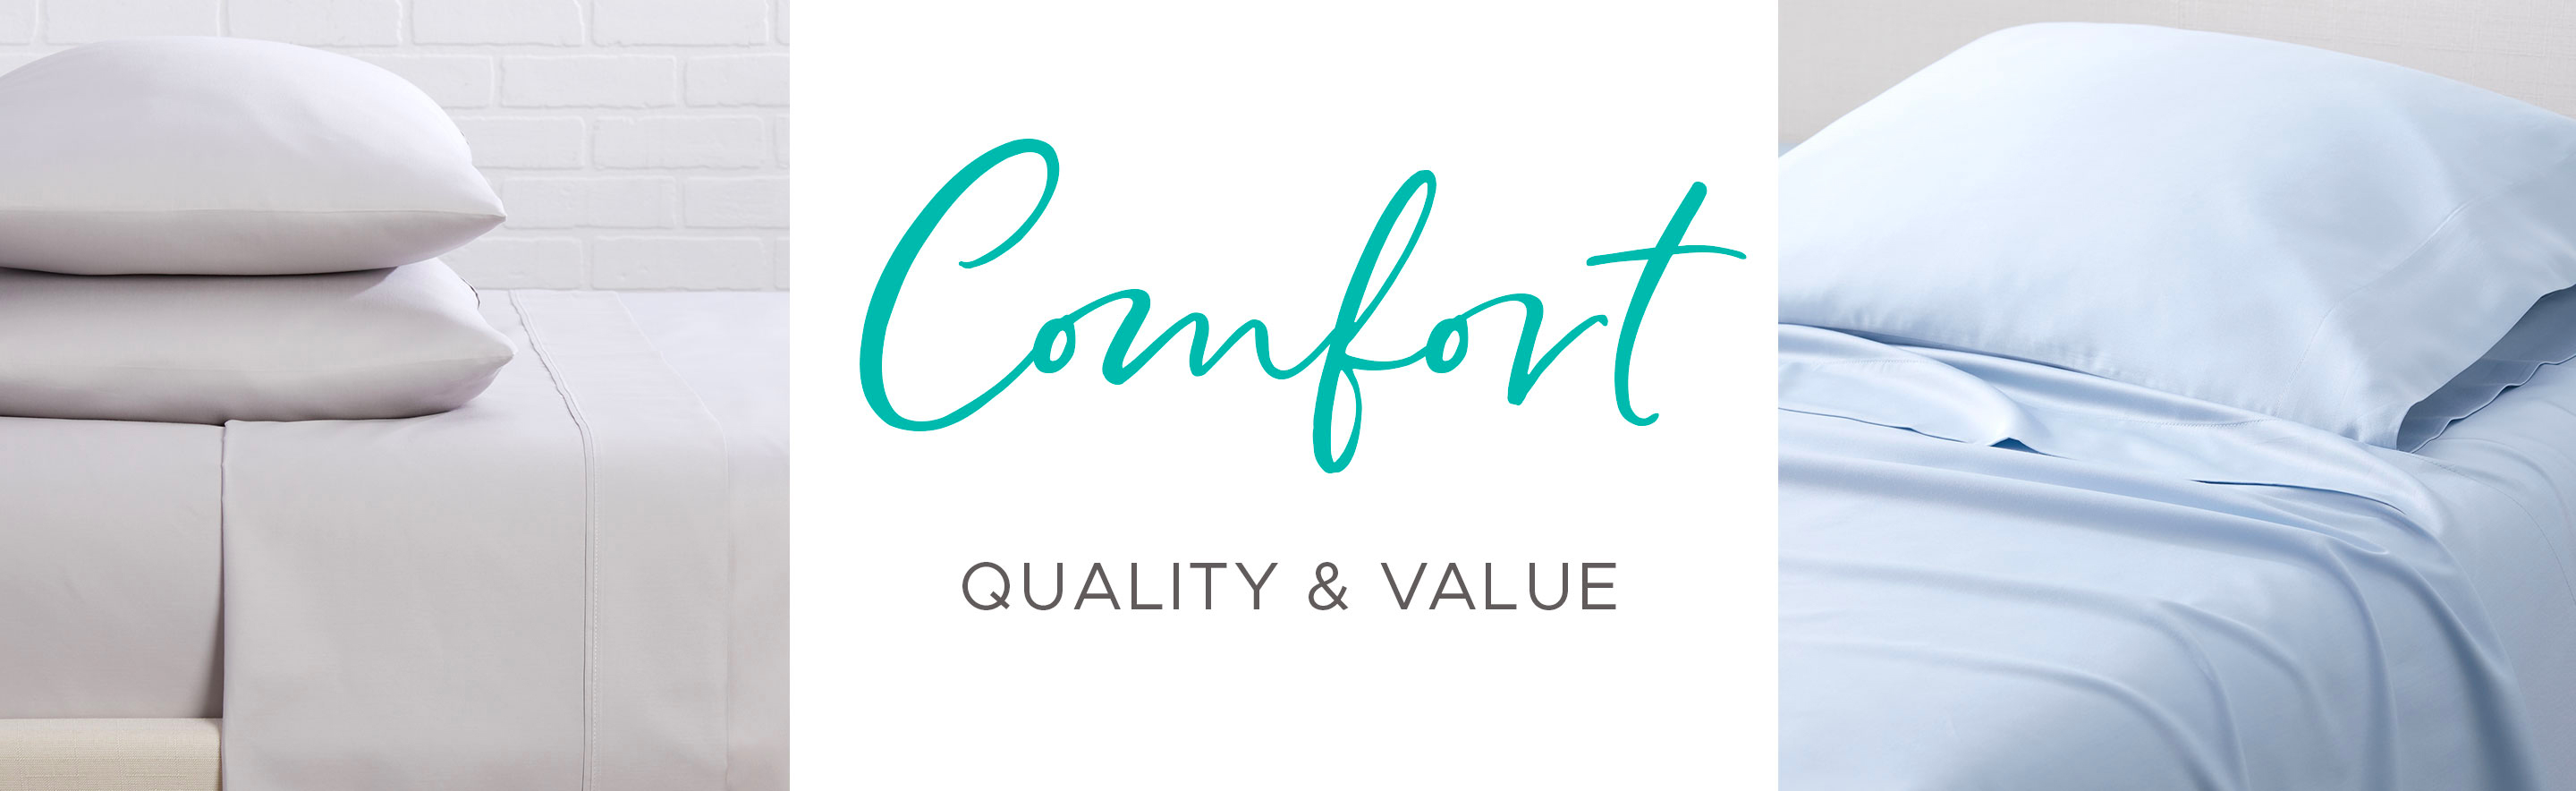 Sheets - Comfort, Quality & Value